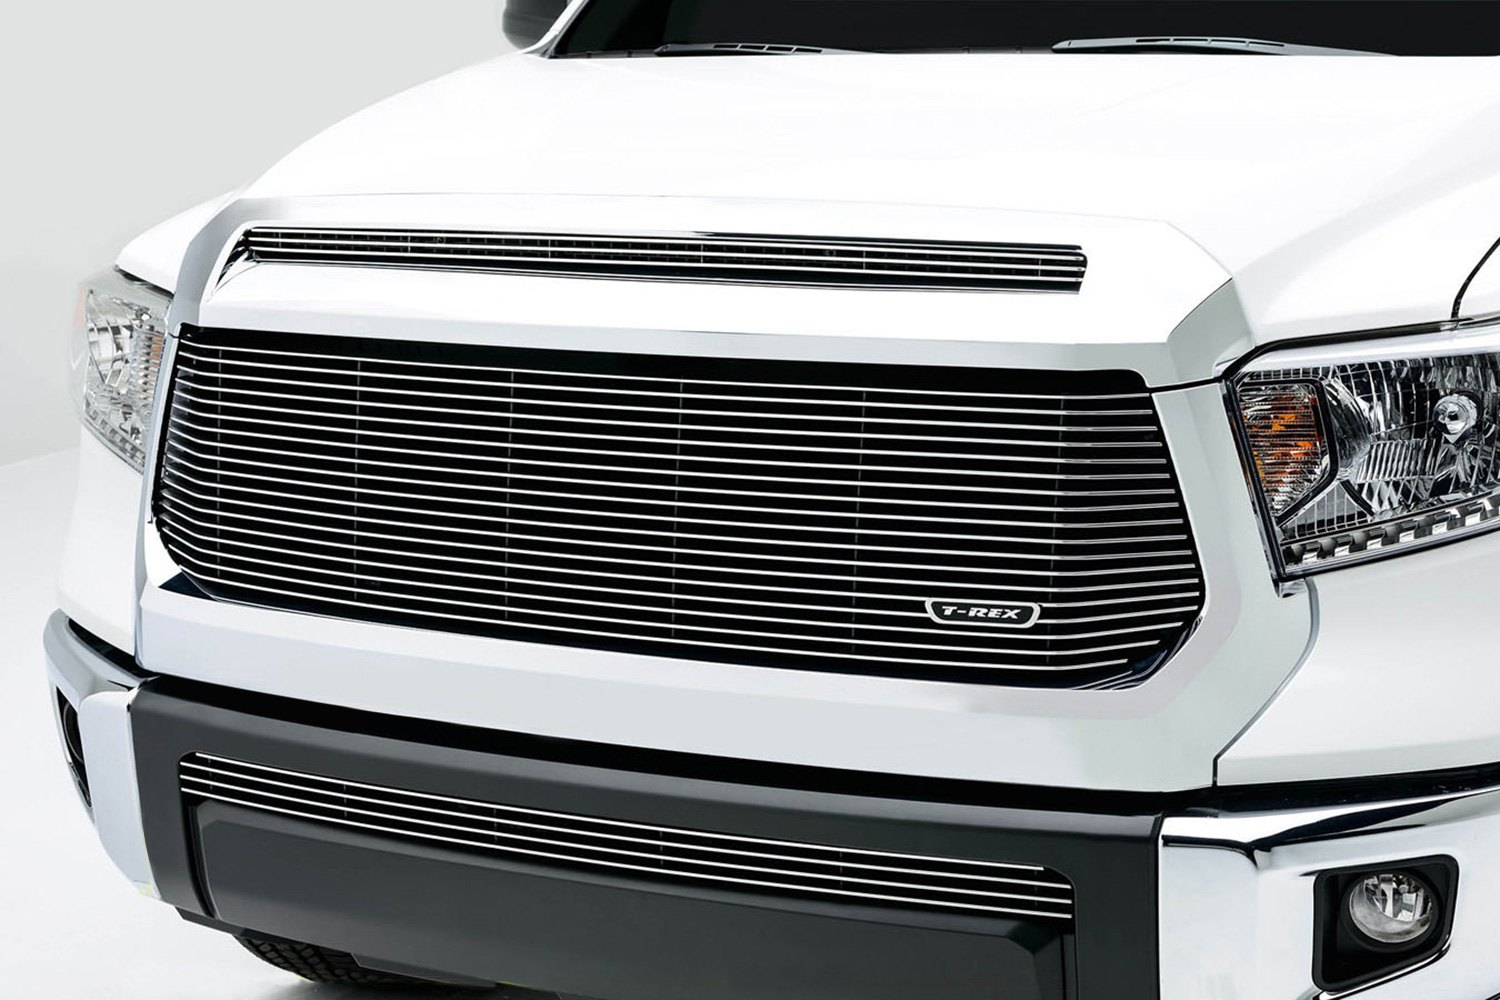 2014 Toyota Tundra Billet Grille